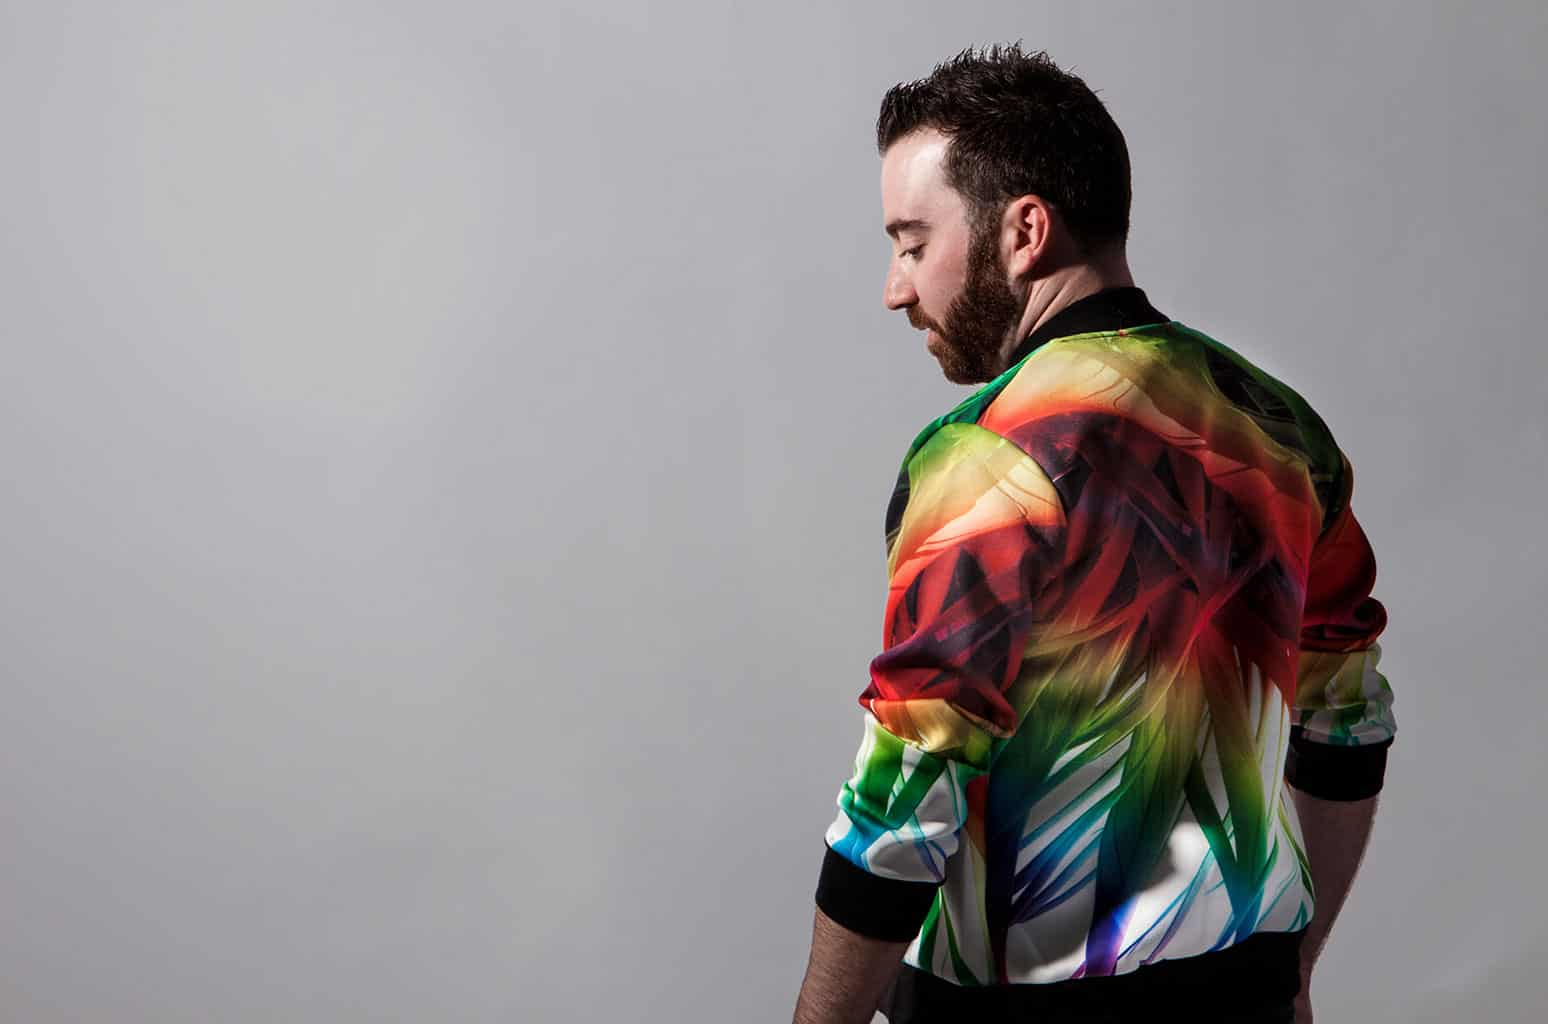 Ryan Riback delivers vibrant remix of Klingande's 'Pumped Up' on Ultra